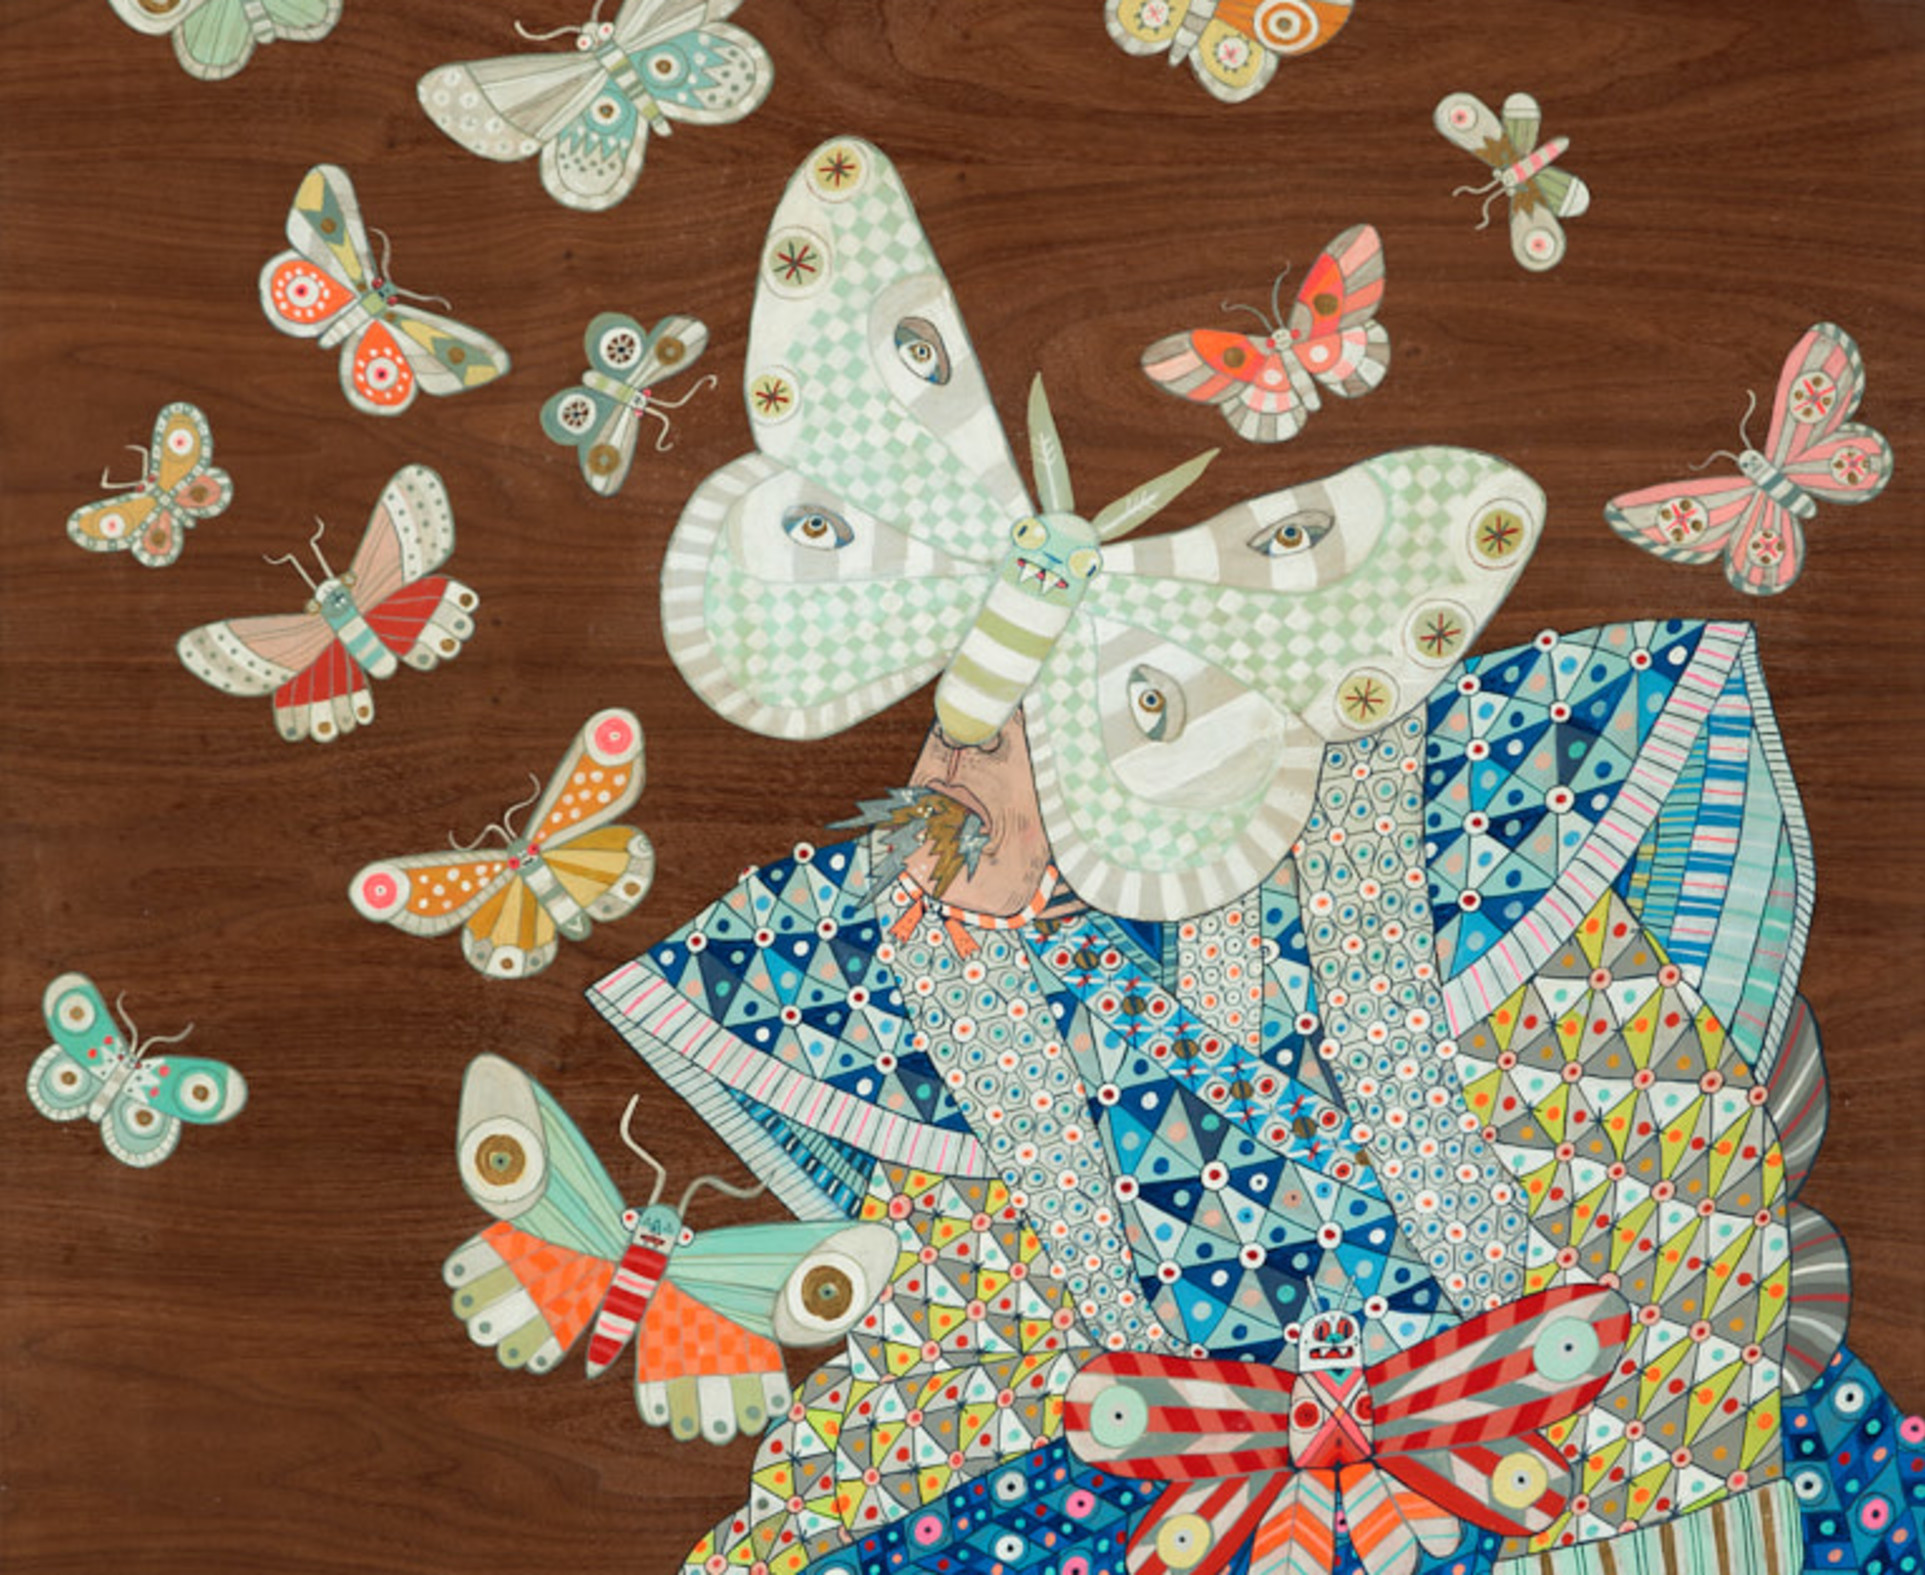 Ferris Plock, Mothman And The Butterflies, 2019